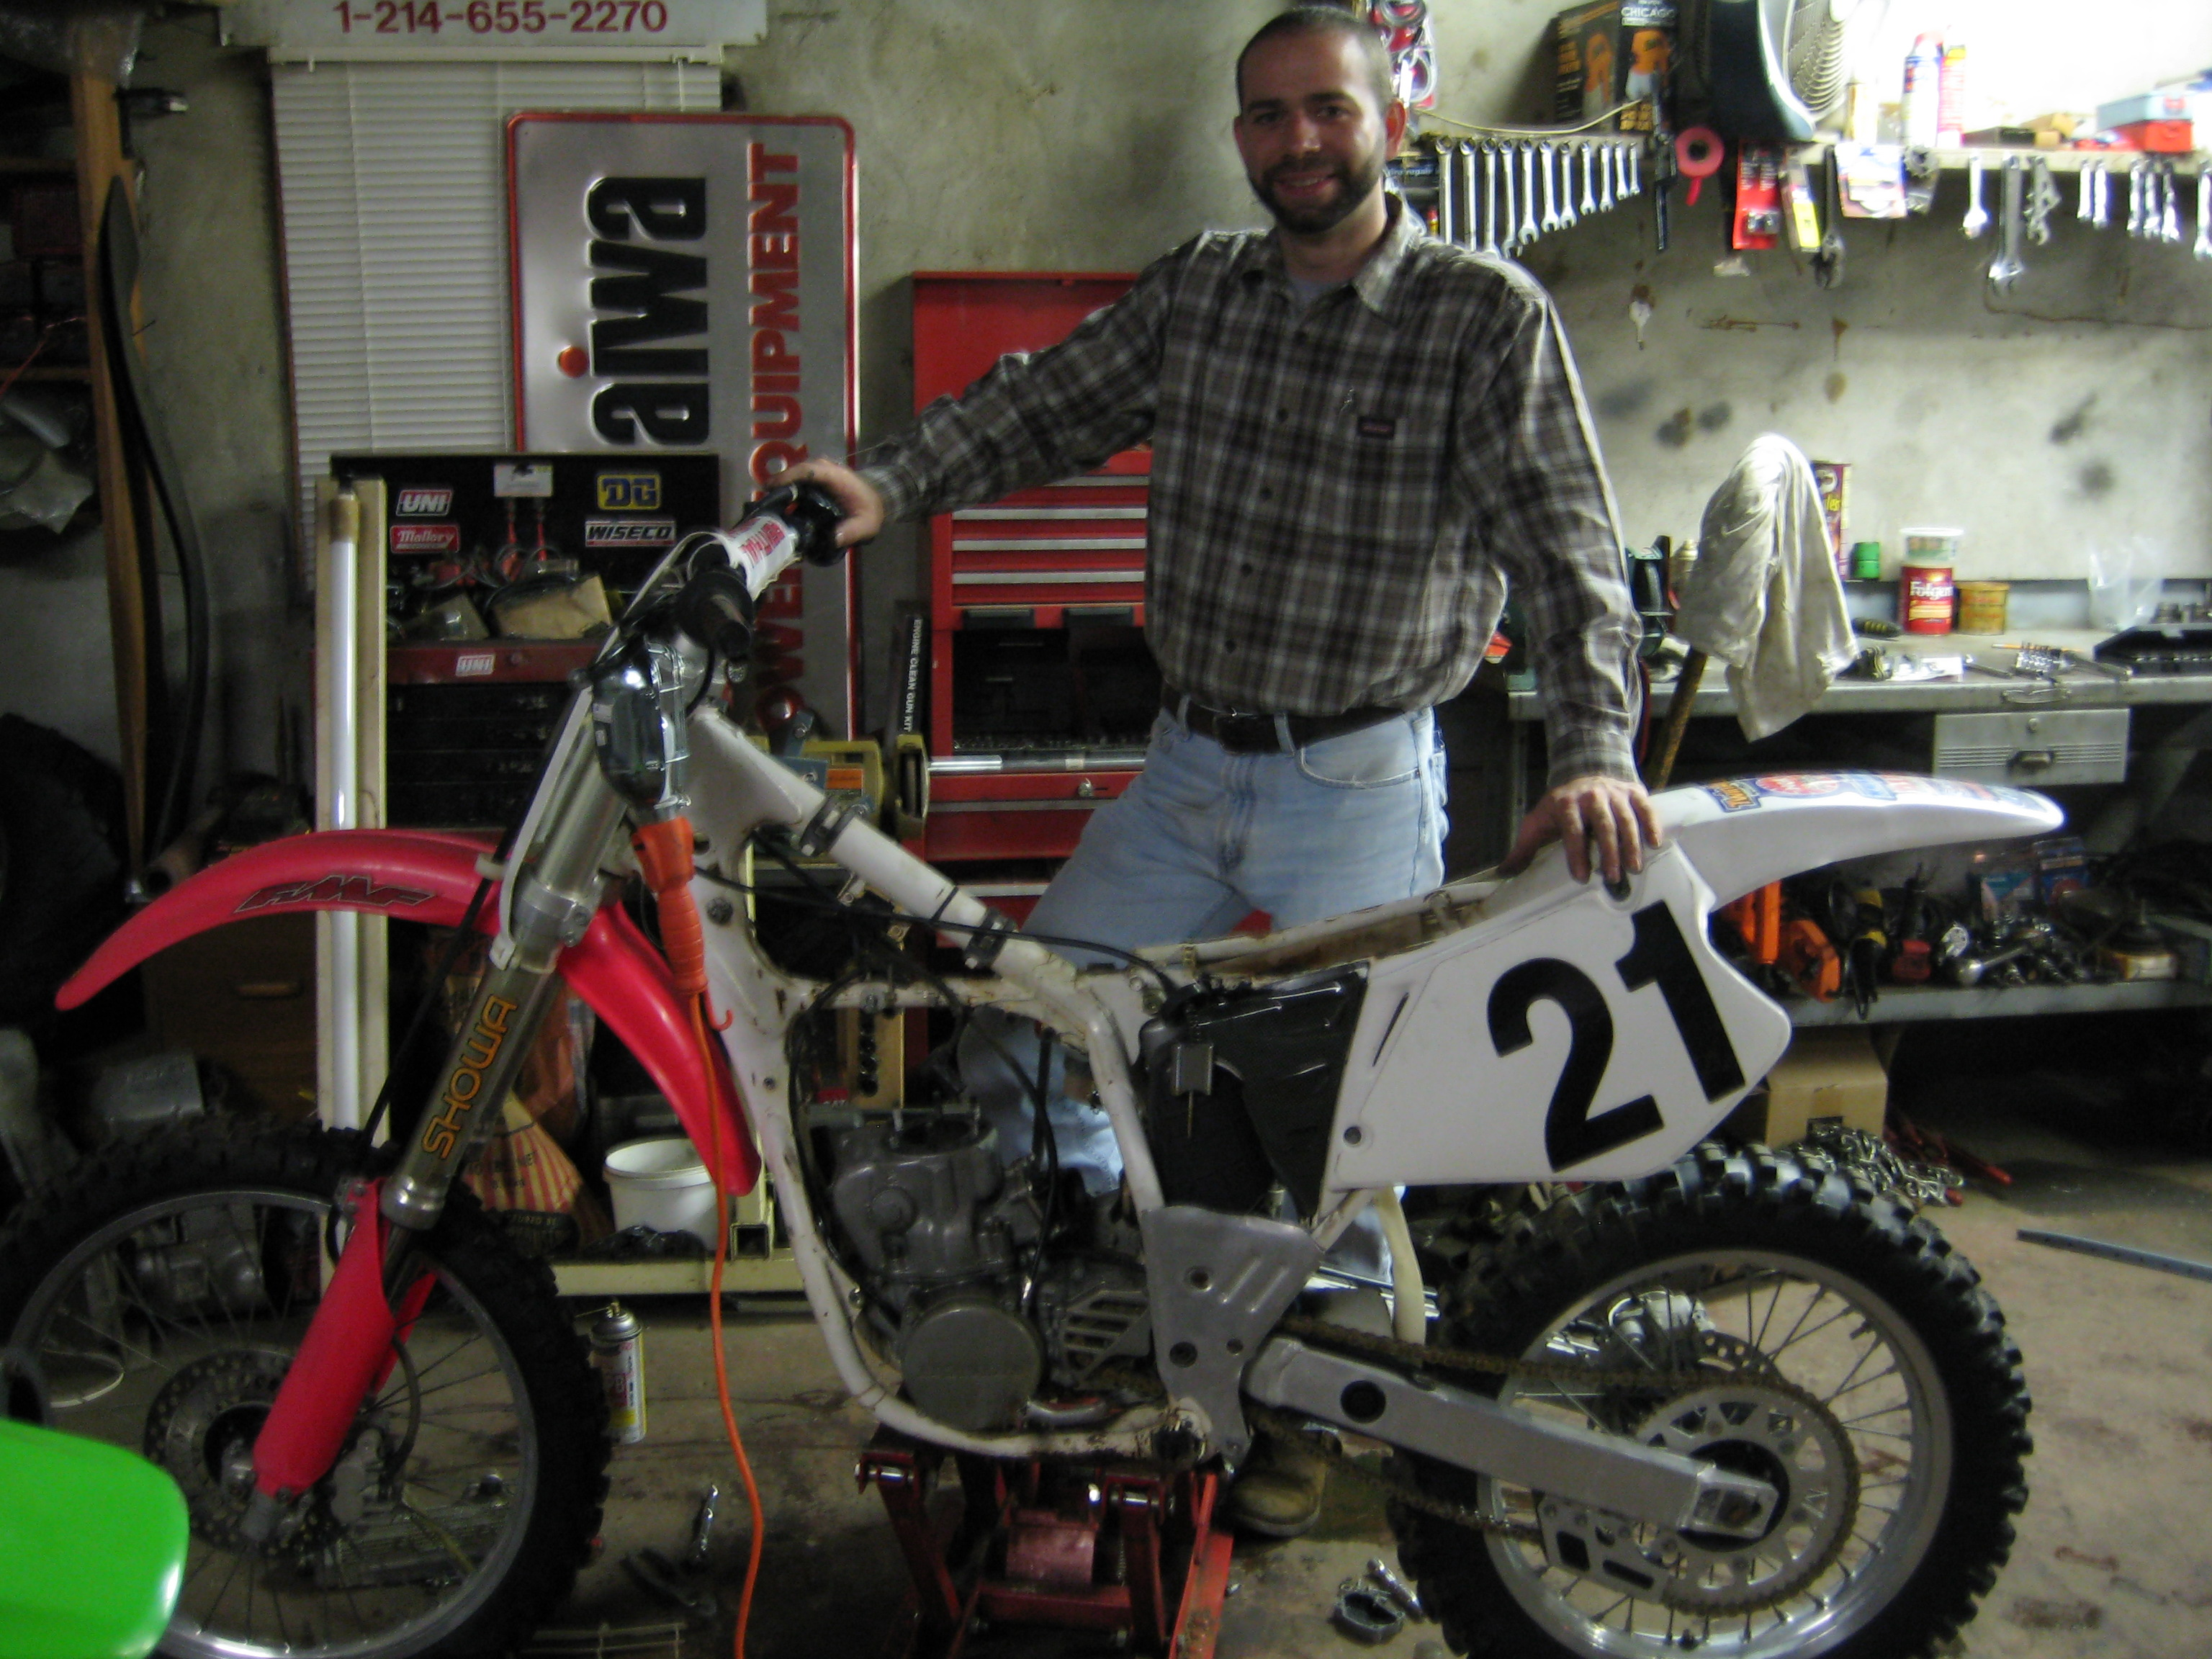 CR250 in the Shop